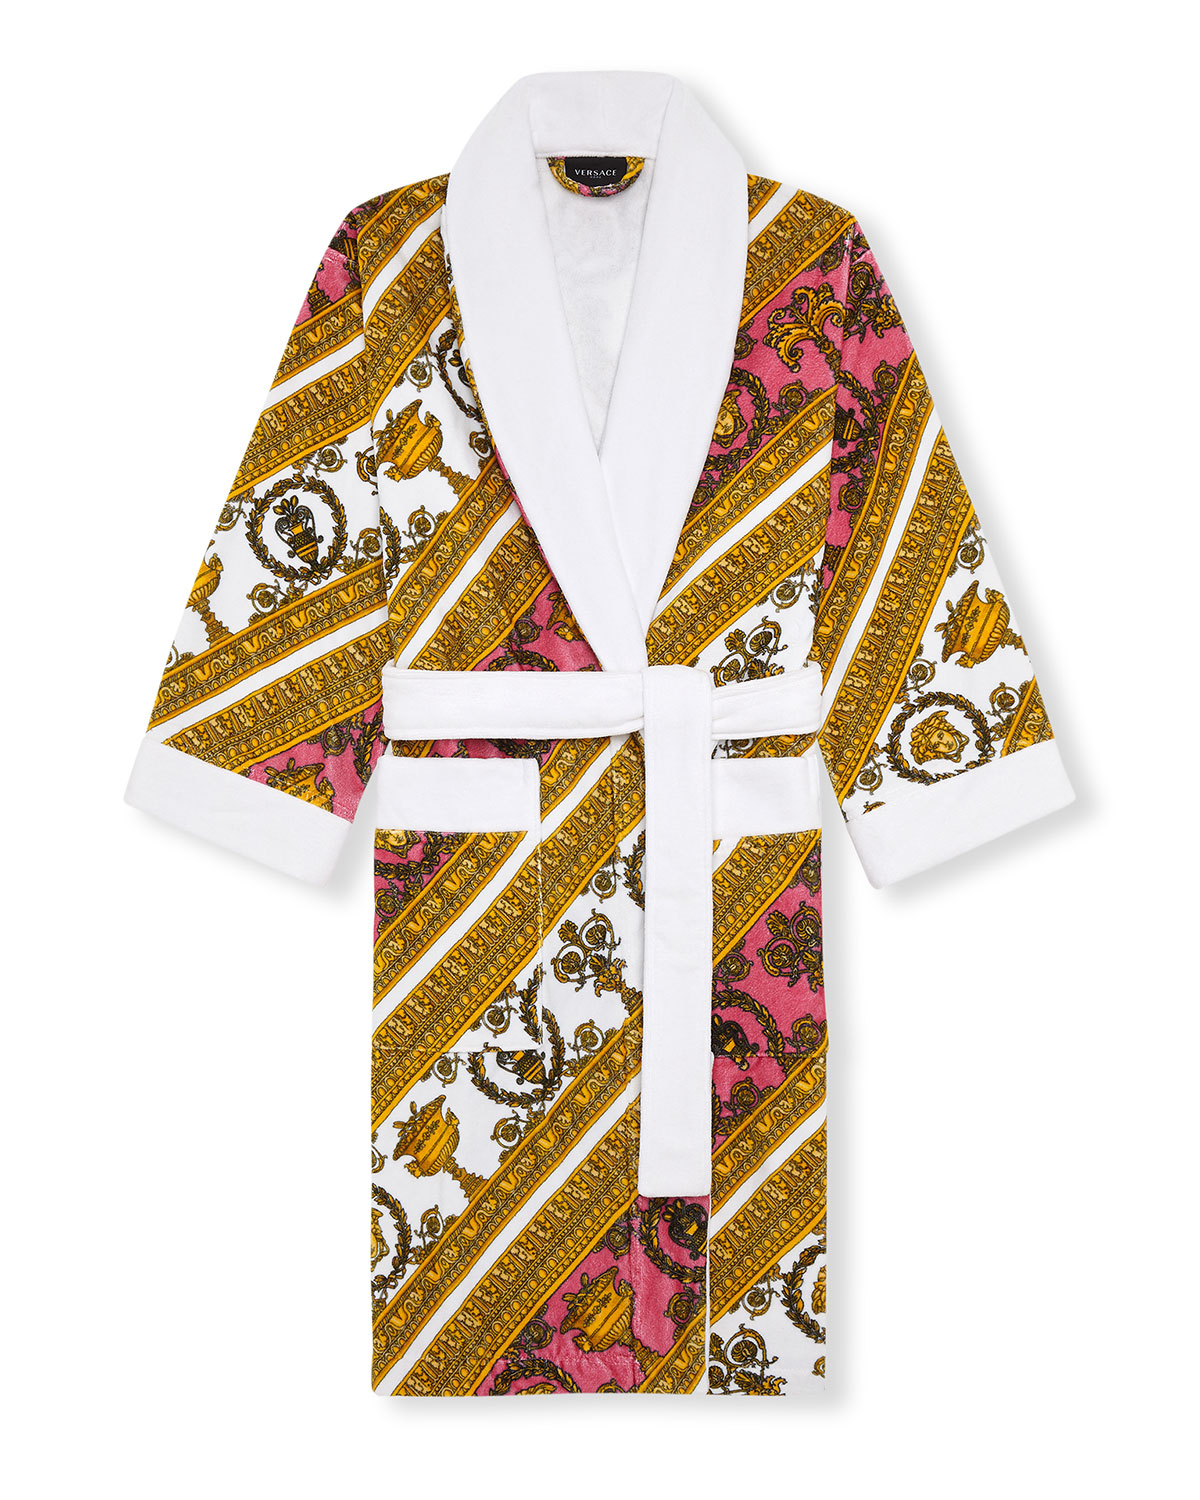 Versace I HEART BAROQUE COTTON ROBE